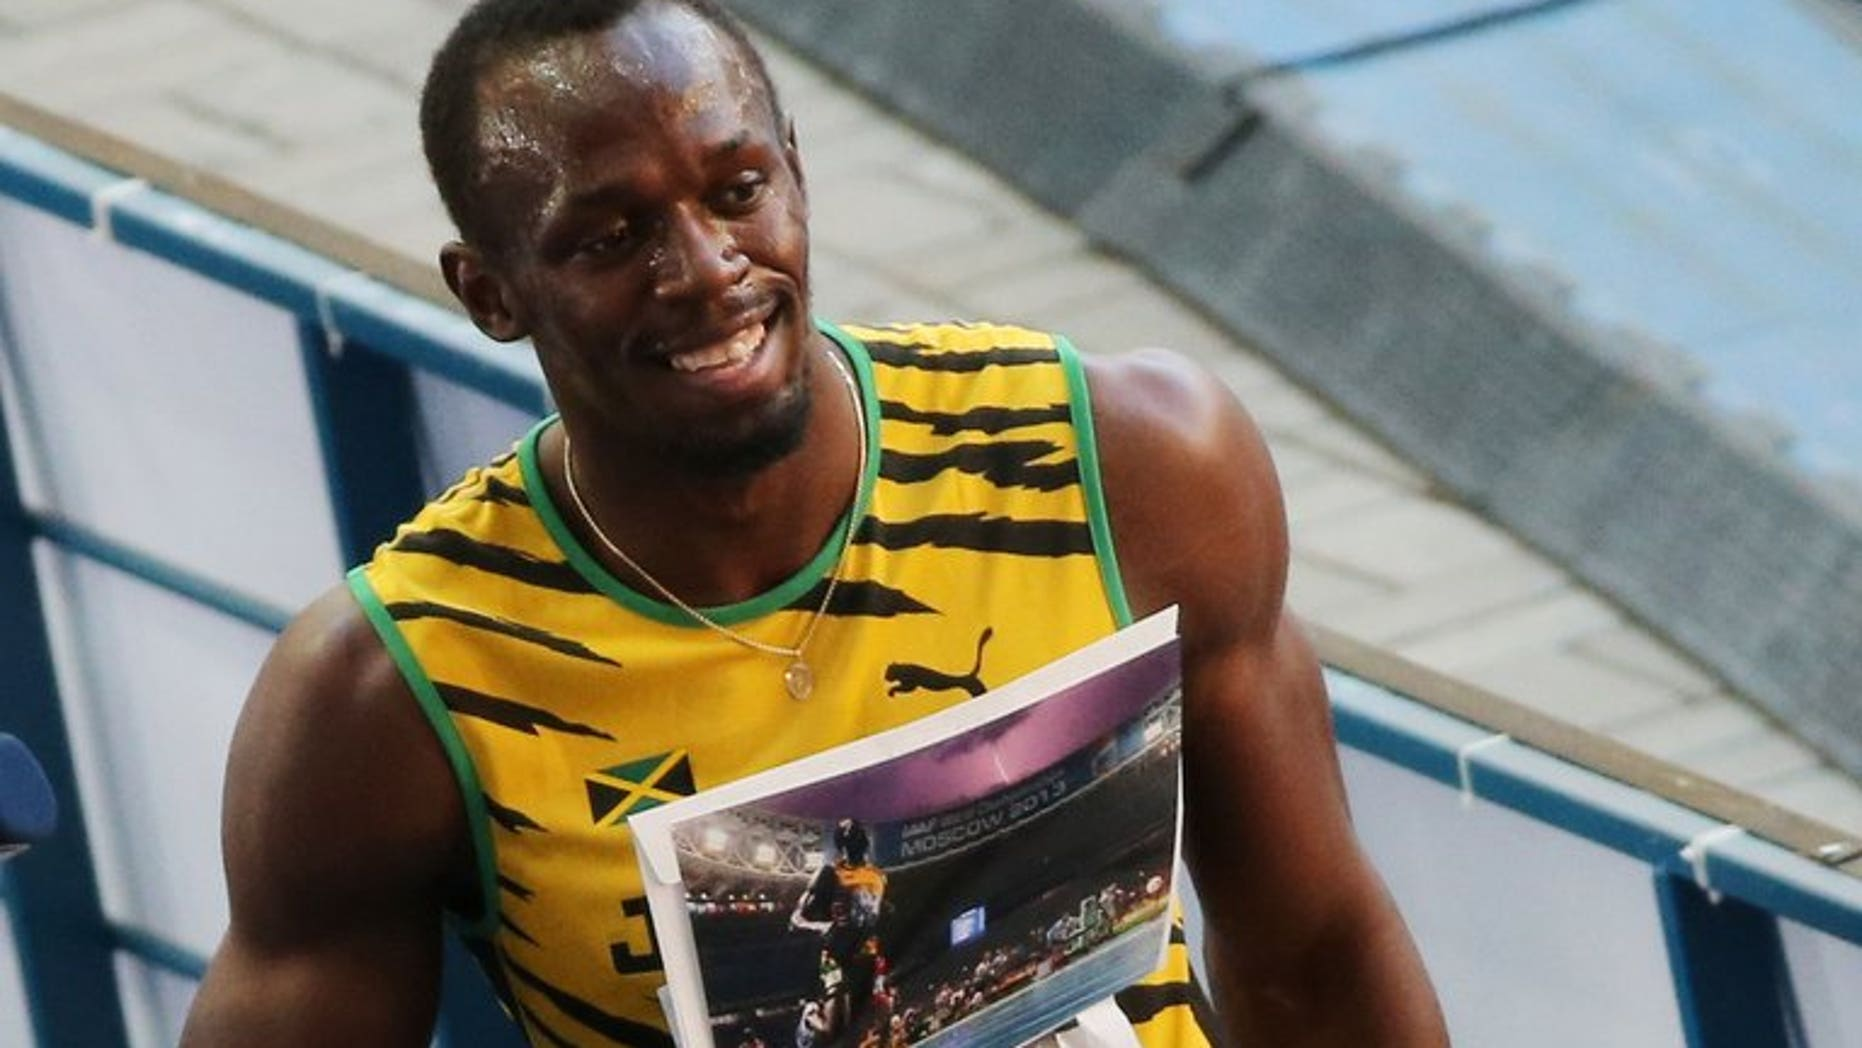 Jamaica's Usain Bolt poses with an AFP picture by photographer Olivier Morin after the men's 200 metres semi-final at the 2013 IAAF World Championships at the Luzhniki stadium in Moscow on August 16, 2013.